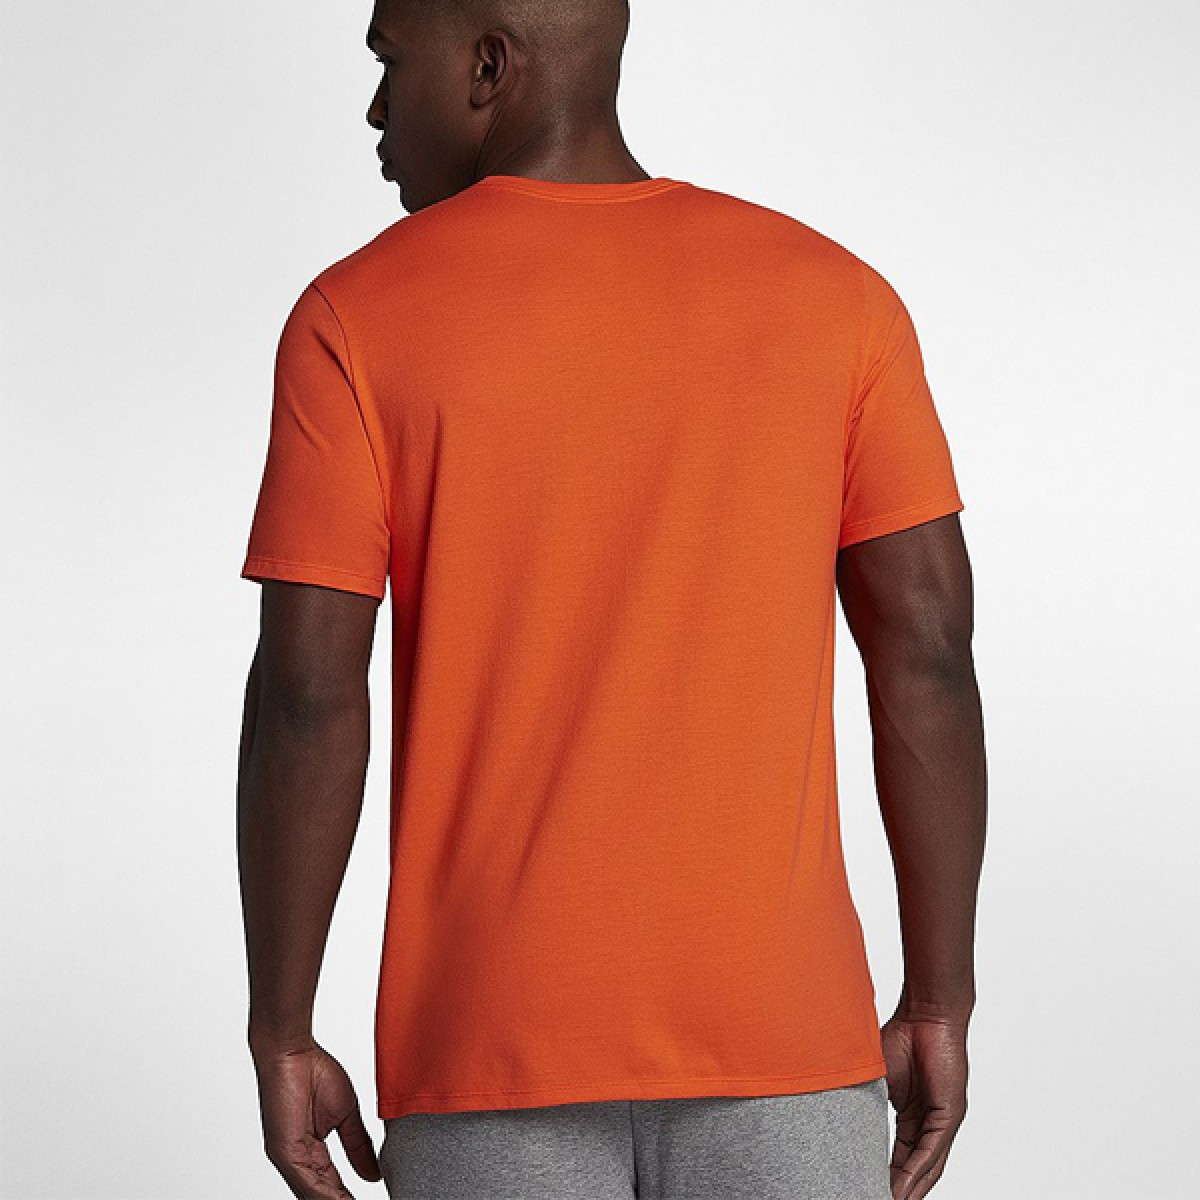 Jordan Like Mike Lightning T-Shirt 'Orange' AJ1163-879